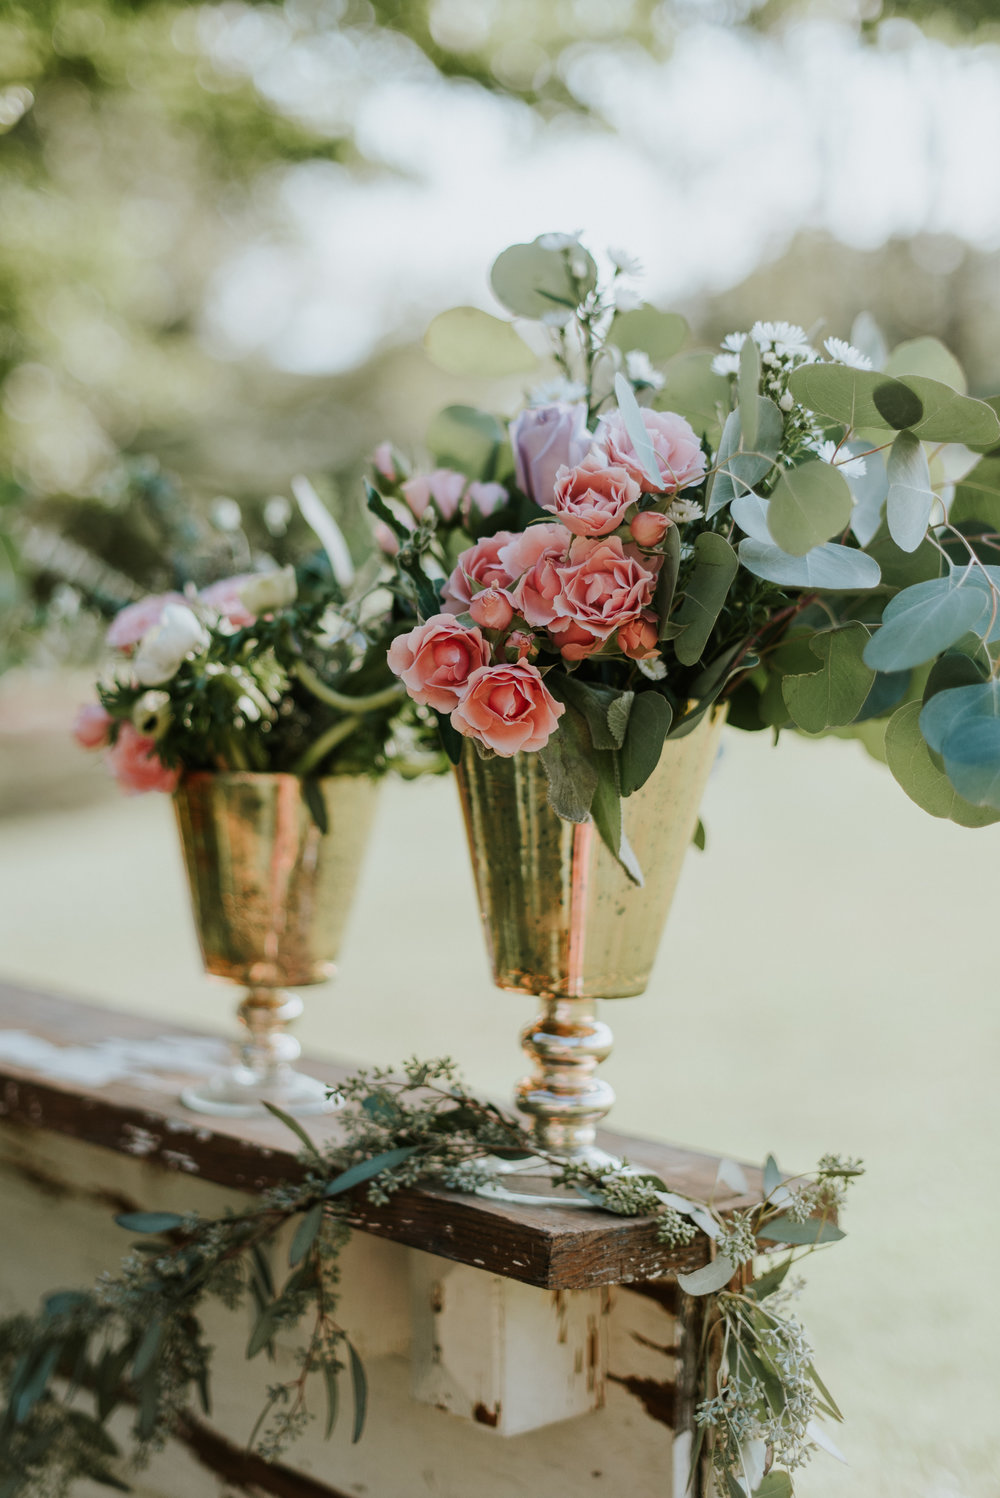 Rustic Oyster Themed Eastern Shore Maryland Outdoor Wedding by East Made Event Company Wedding Planner and Bekah Kay Creative656.jpg